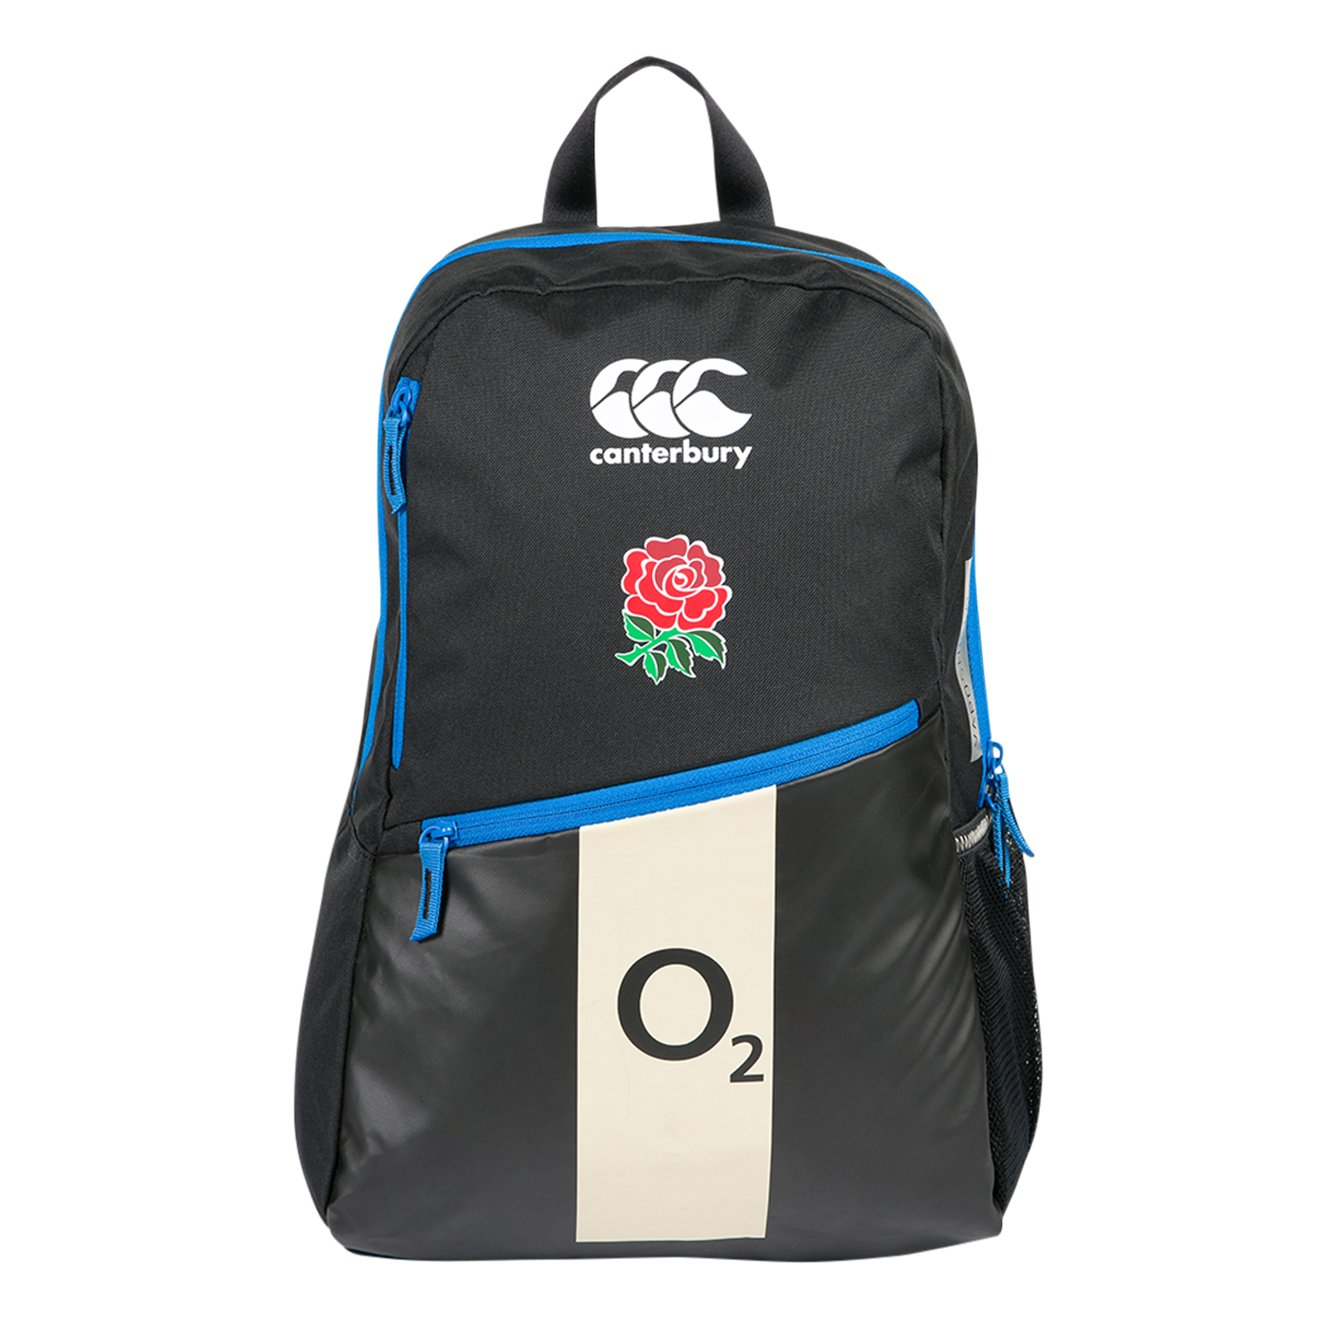 Canterbury 2018-2019 England Rugby Medium Backpack (Anthracite) Anthracite One Size E201442A90